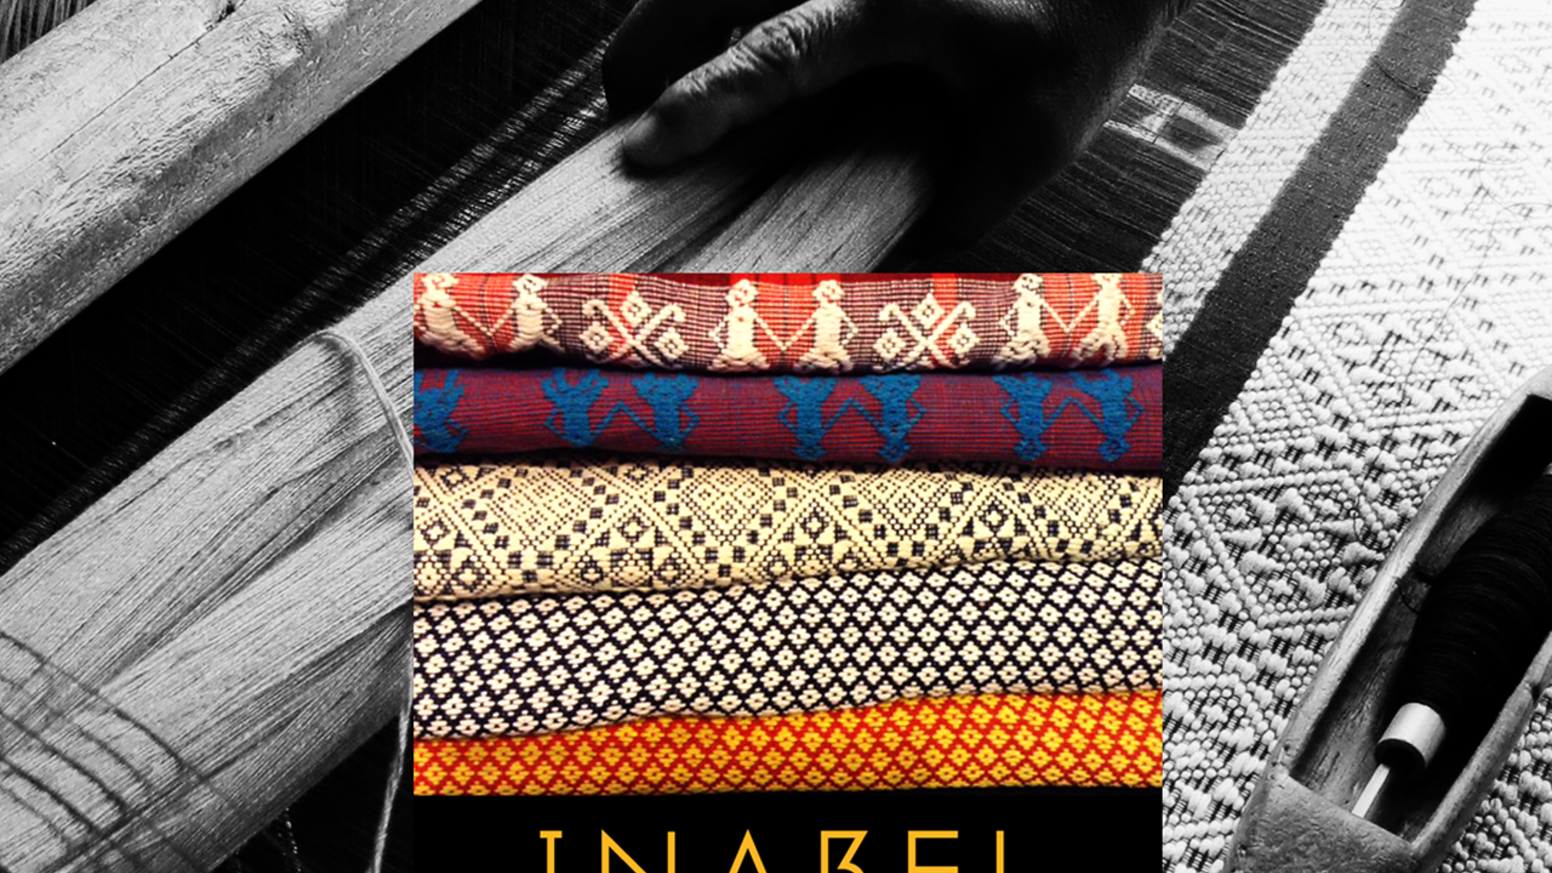 inabel an epitome of the Sustainability nowadays one of the main challenges of the construction industry is to improve the image in terms of sustainability sustainability is defined as the development that meets the needs of the present without compromising the ability of future generations to meet their own needs.